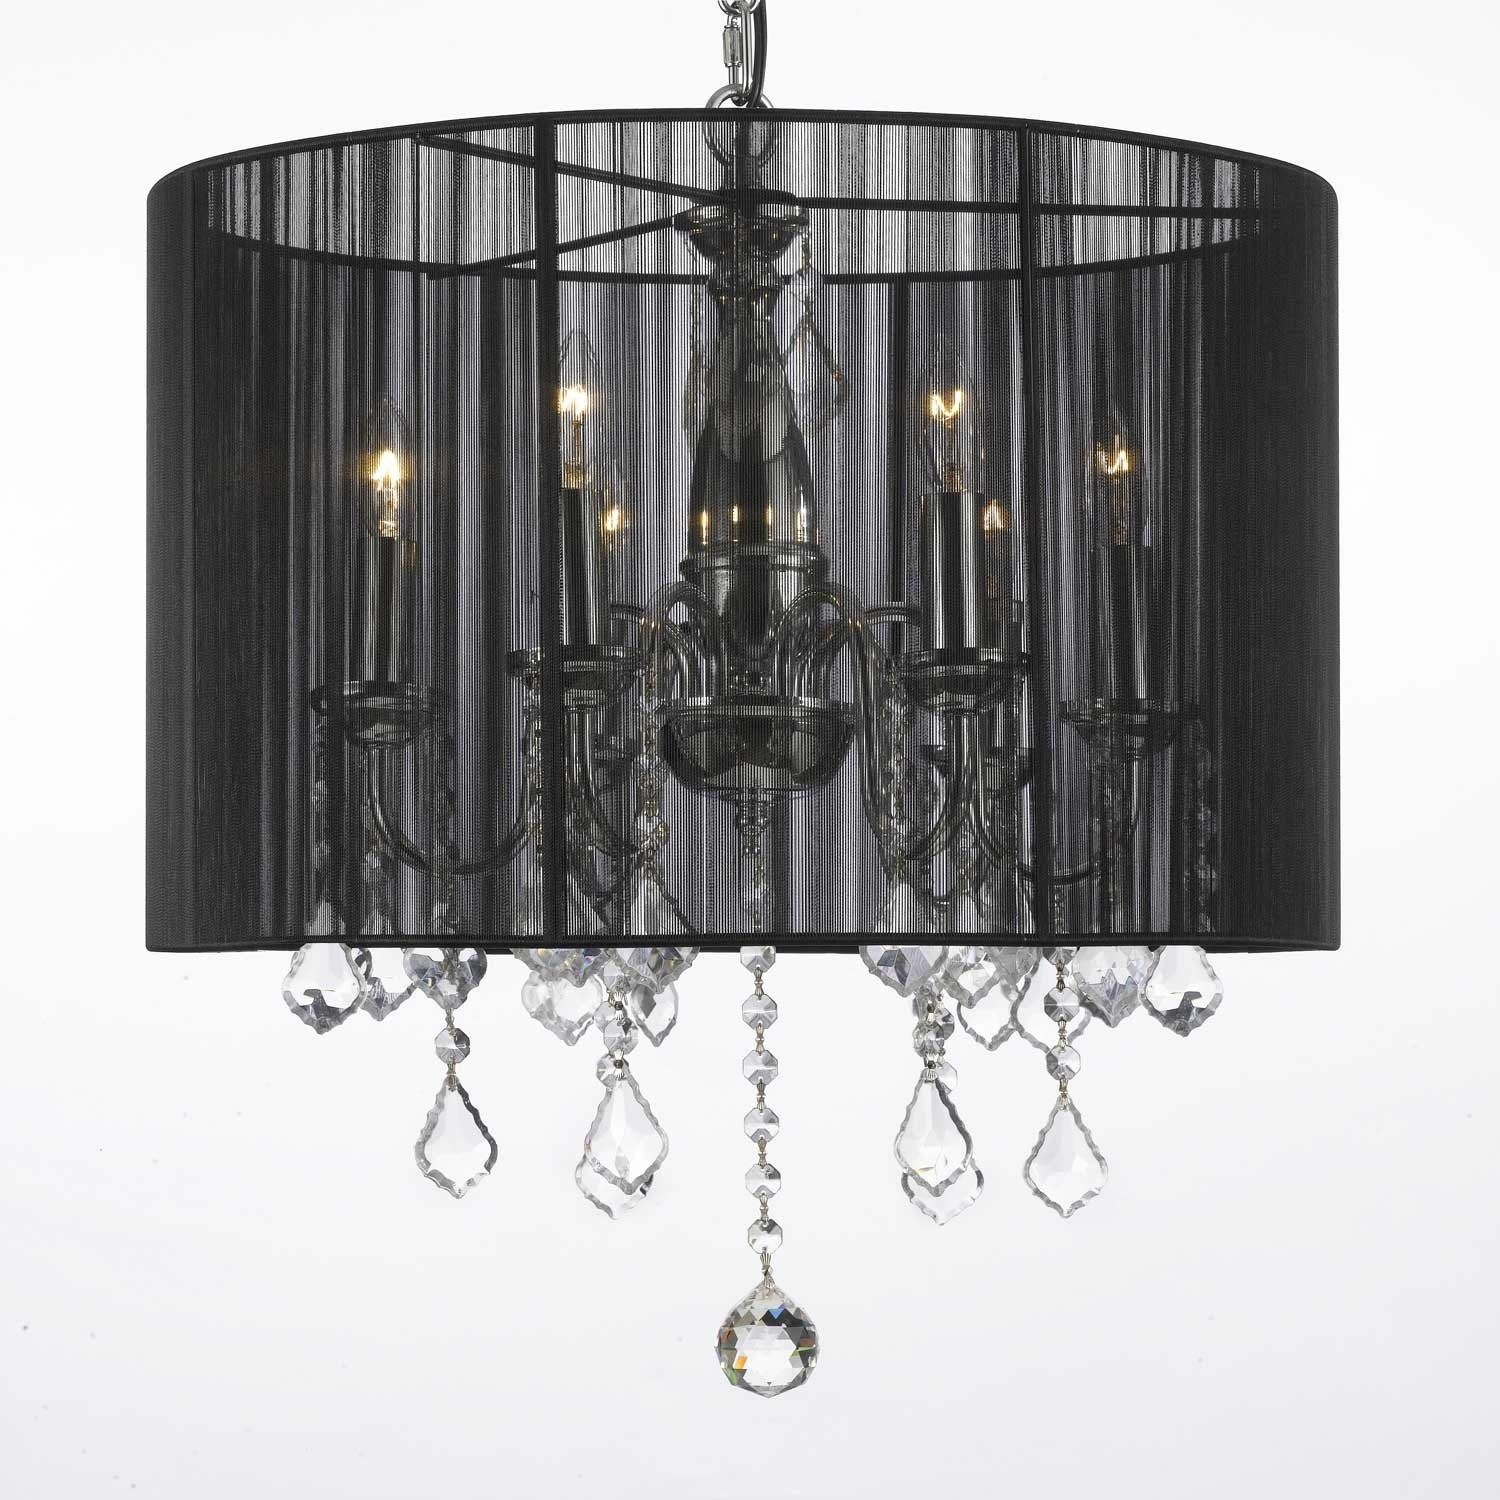 Plug In Chandelier With Shade 14 Feet Of Hanging Chain Wire 29003999